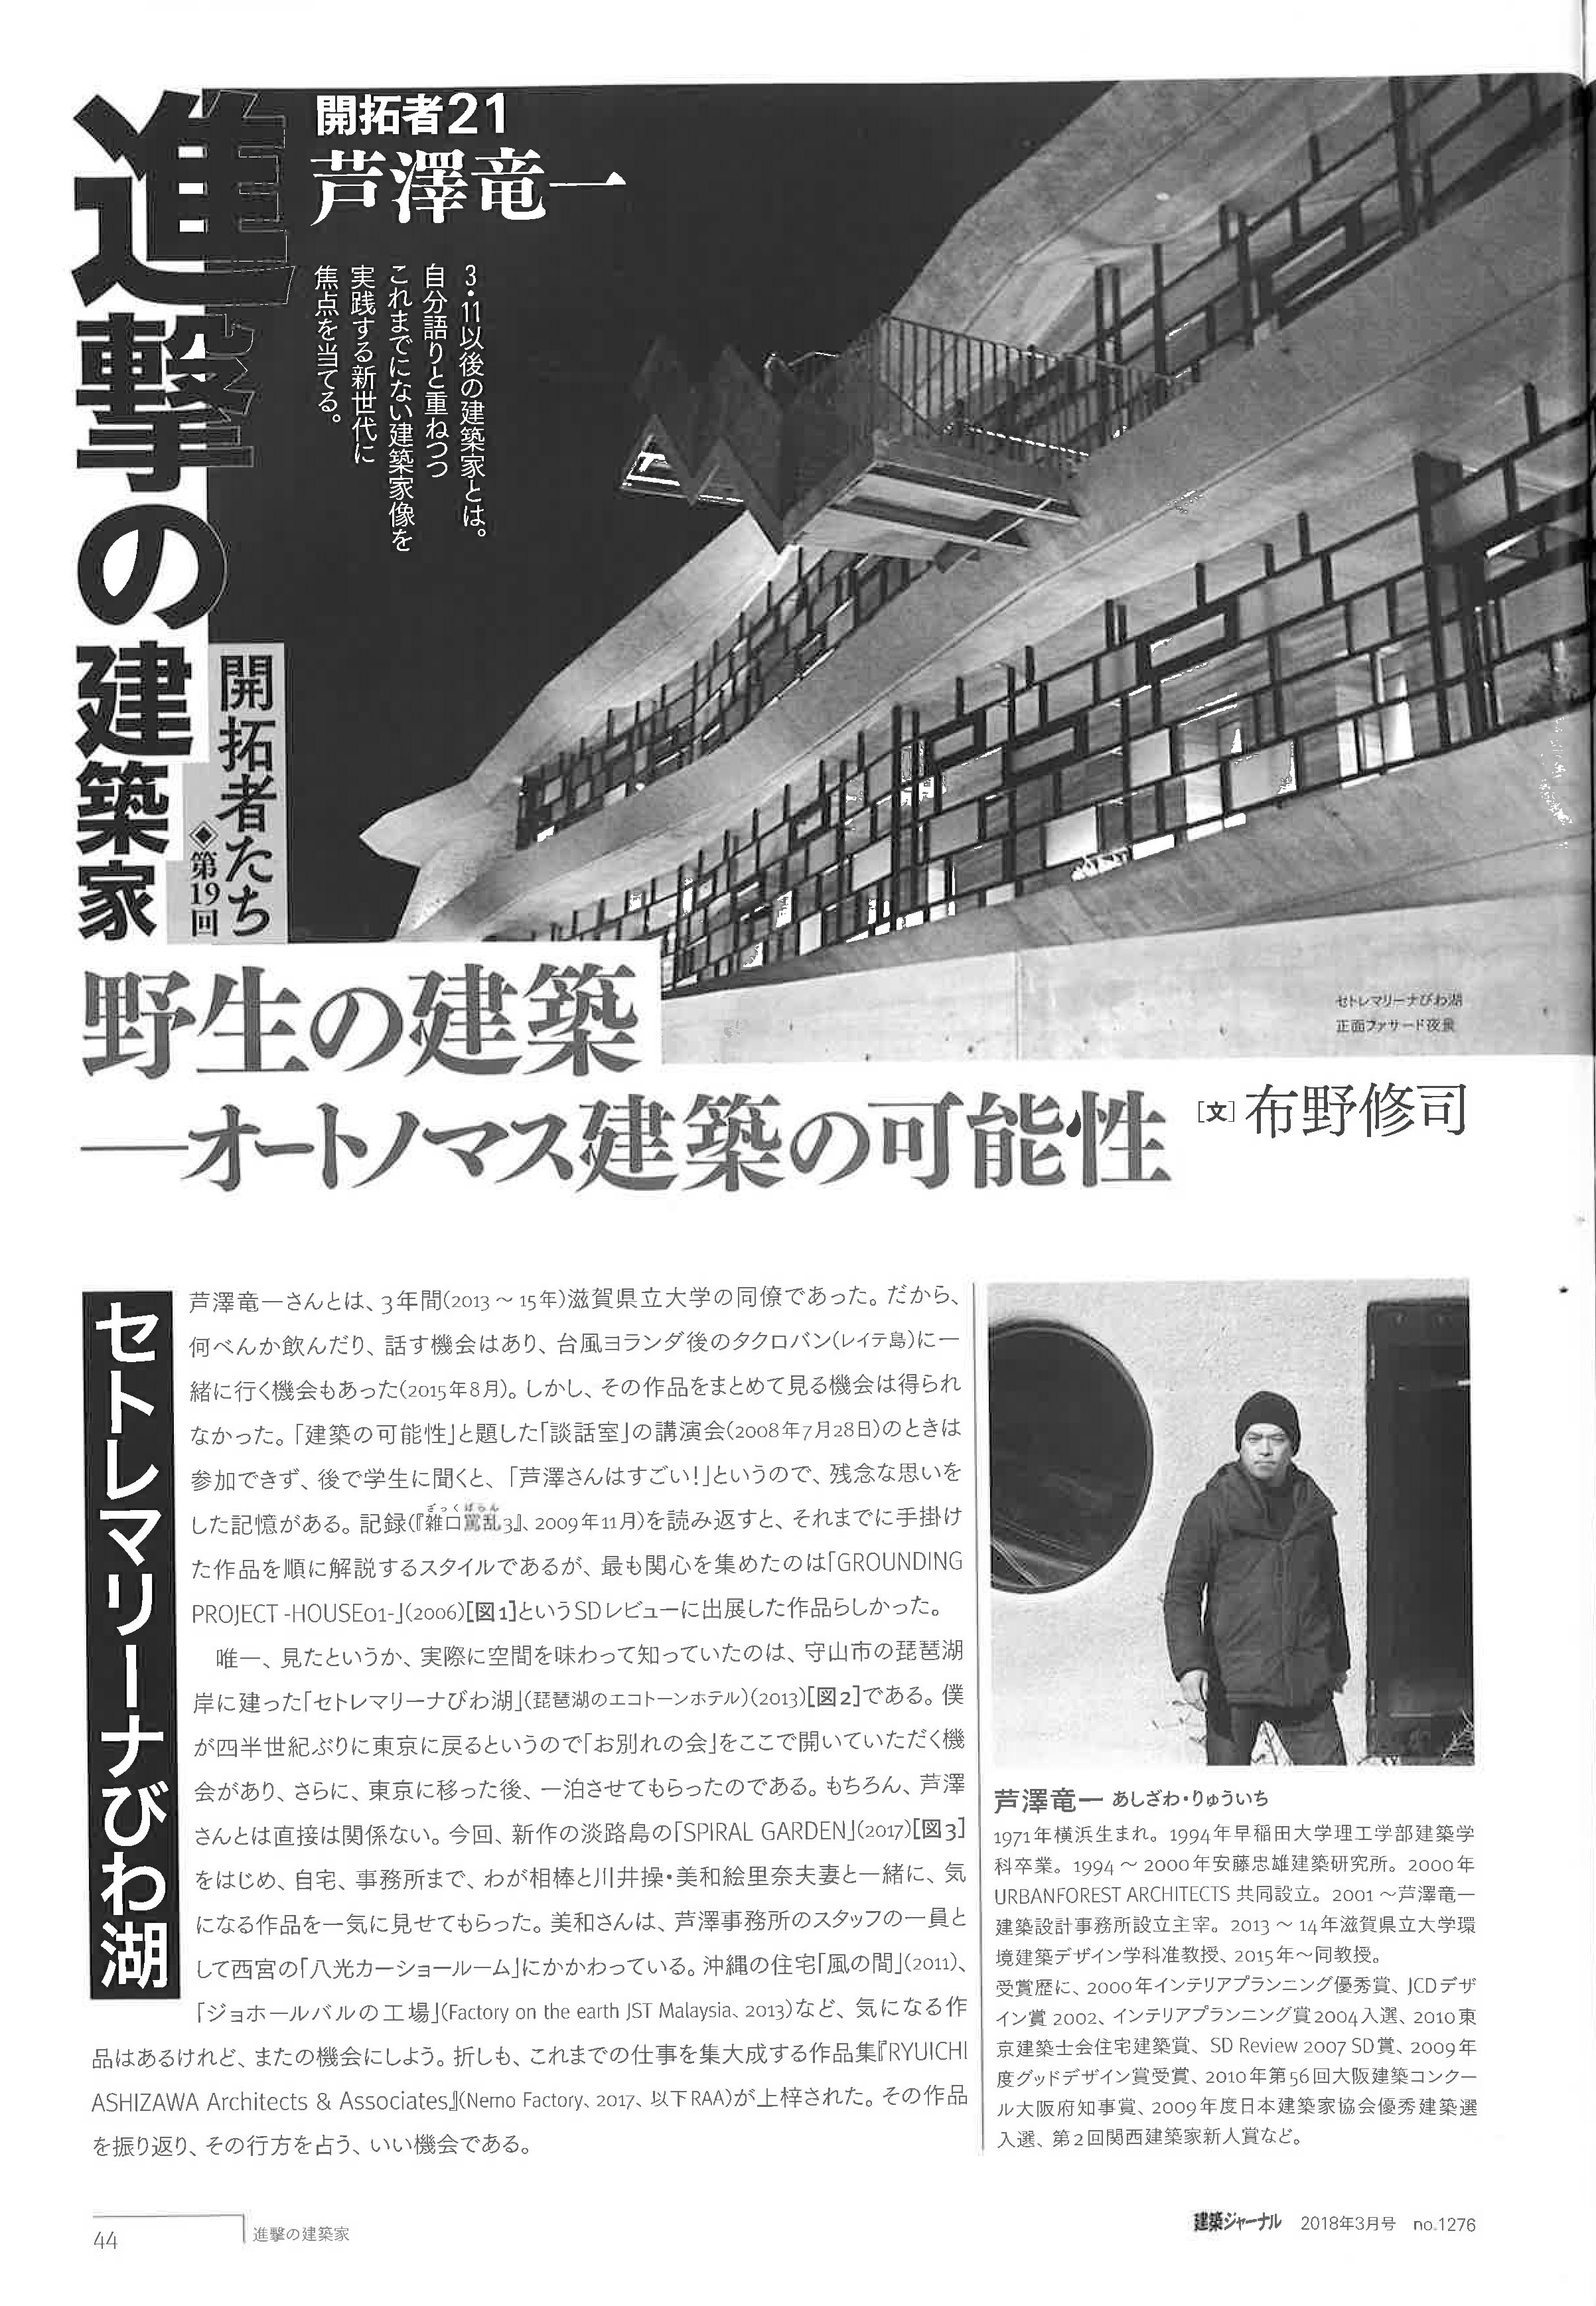 raa topics ryuichi ashizawa featured in architectural journal